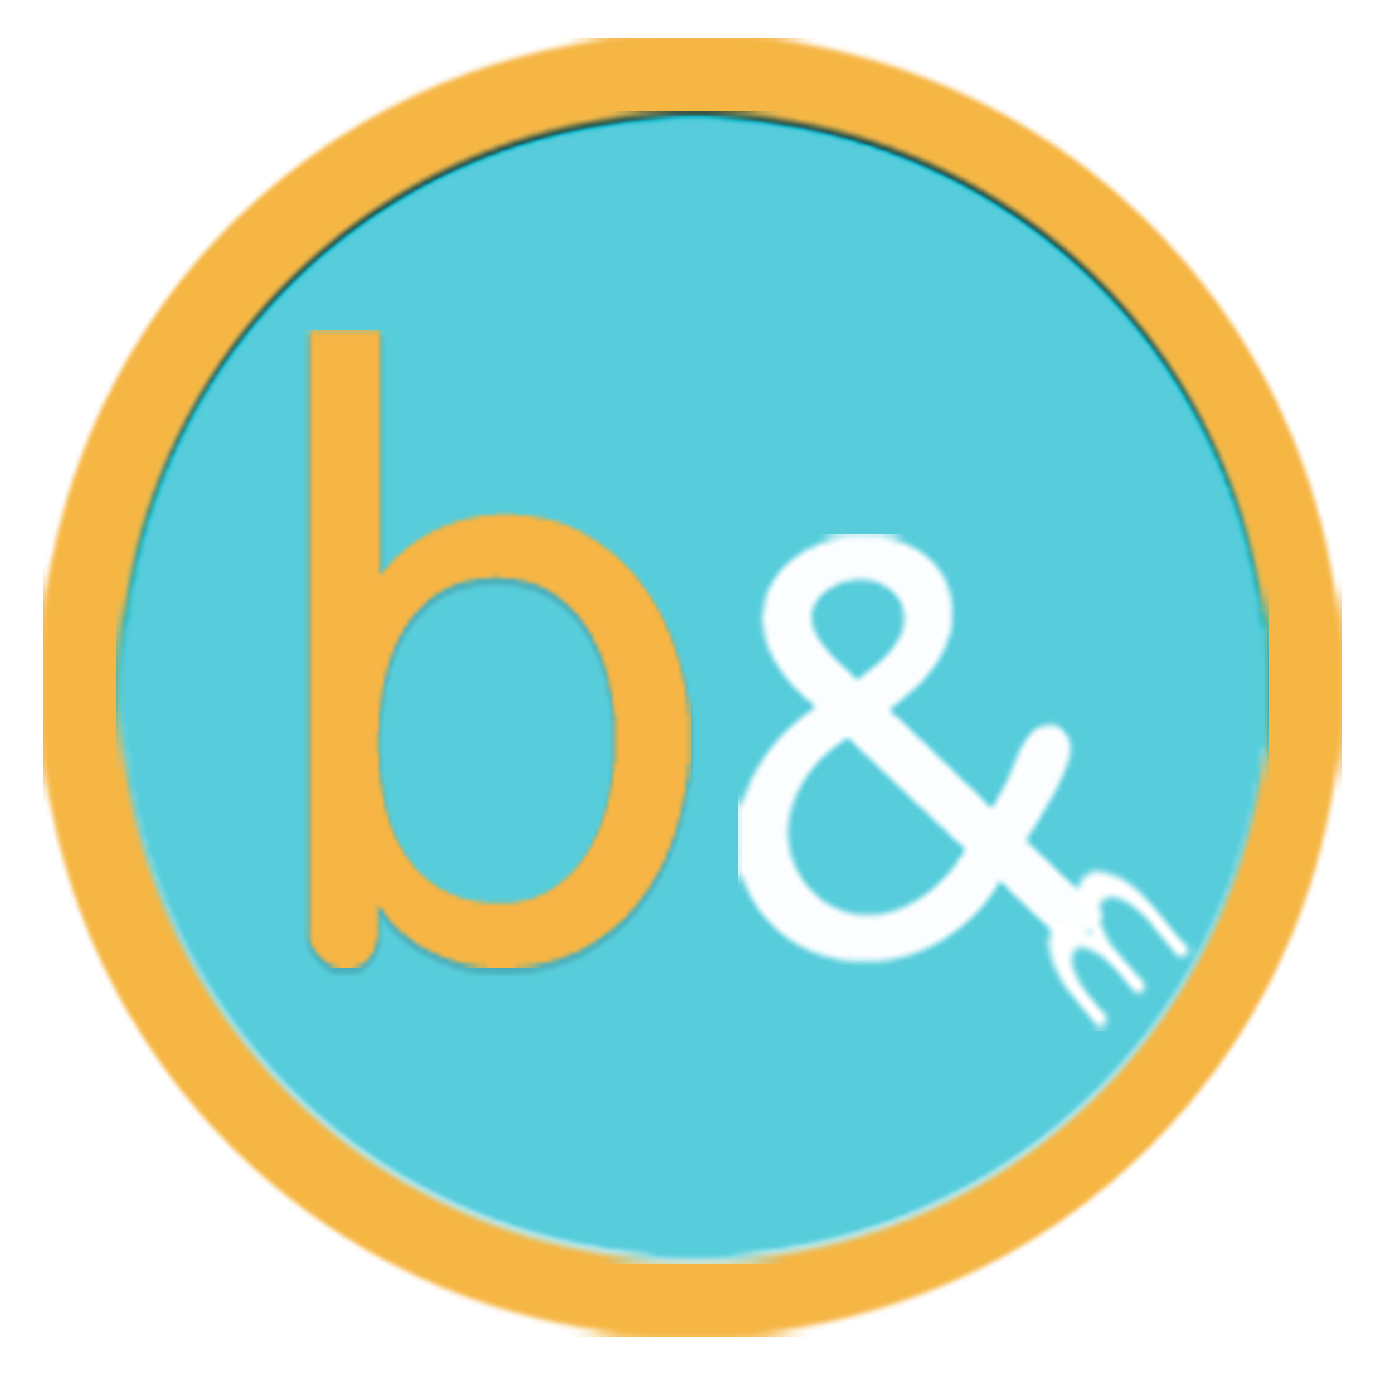 Brunch and Budget logo